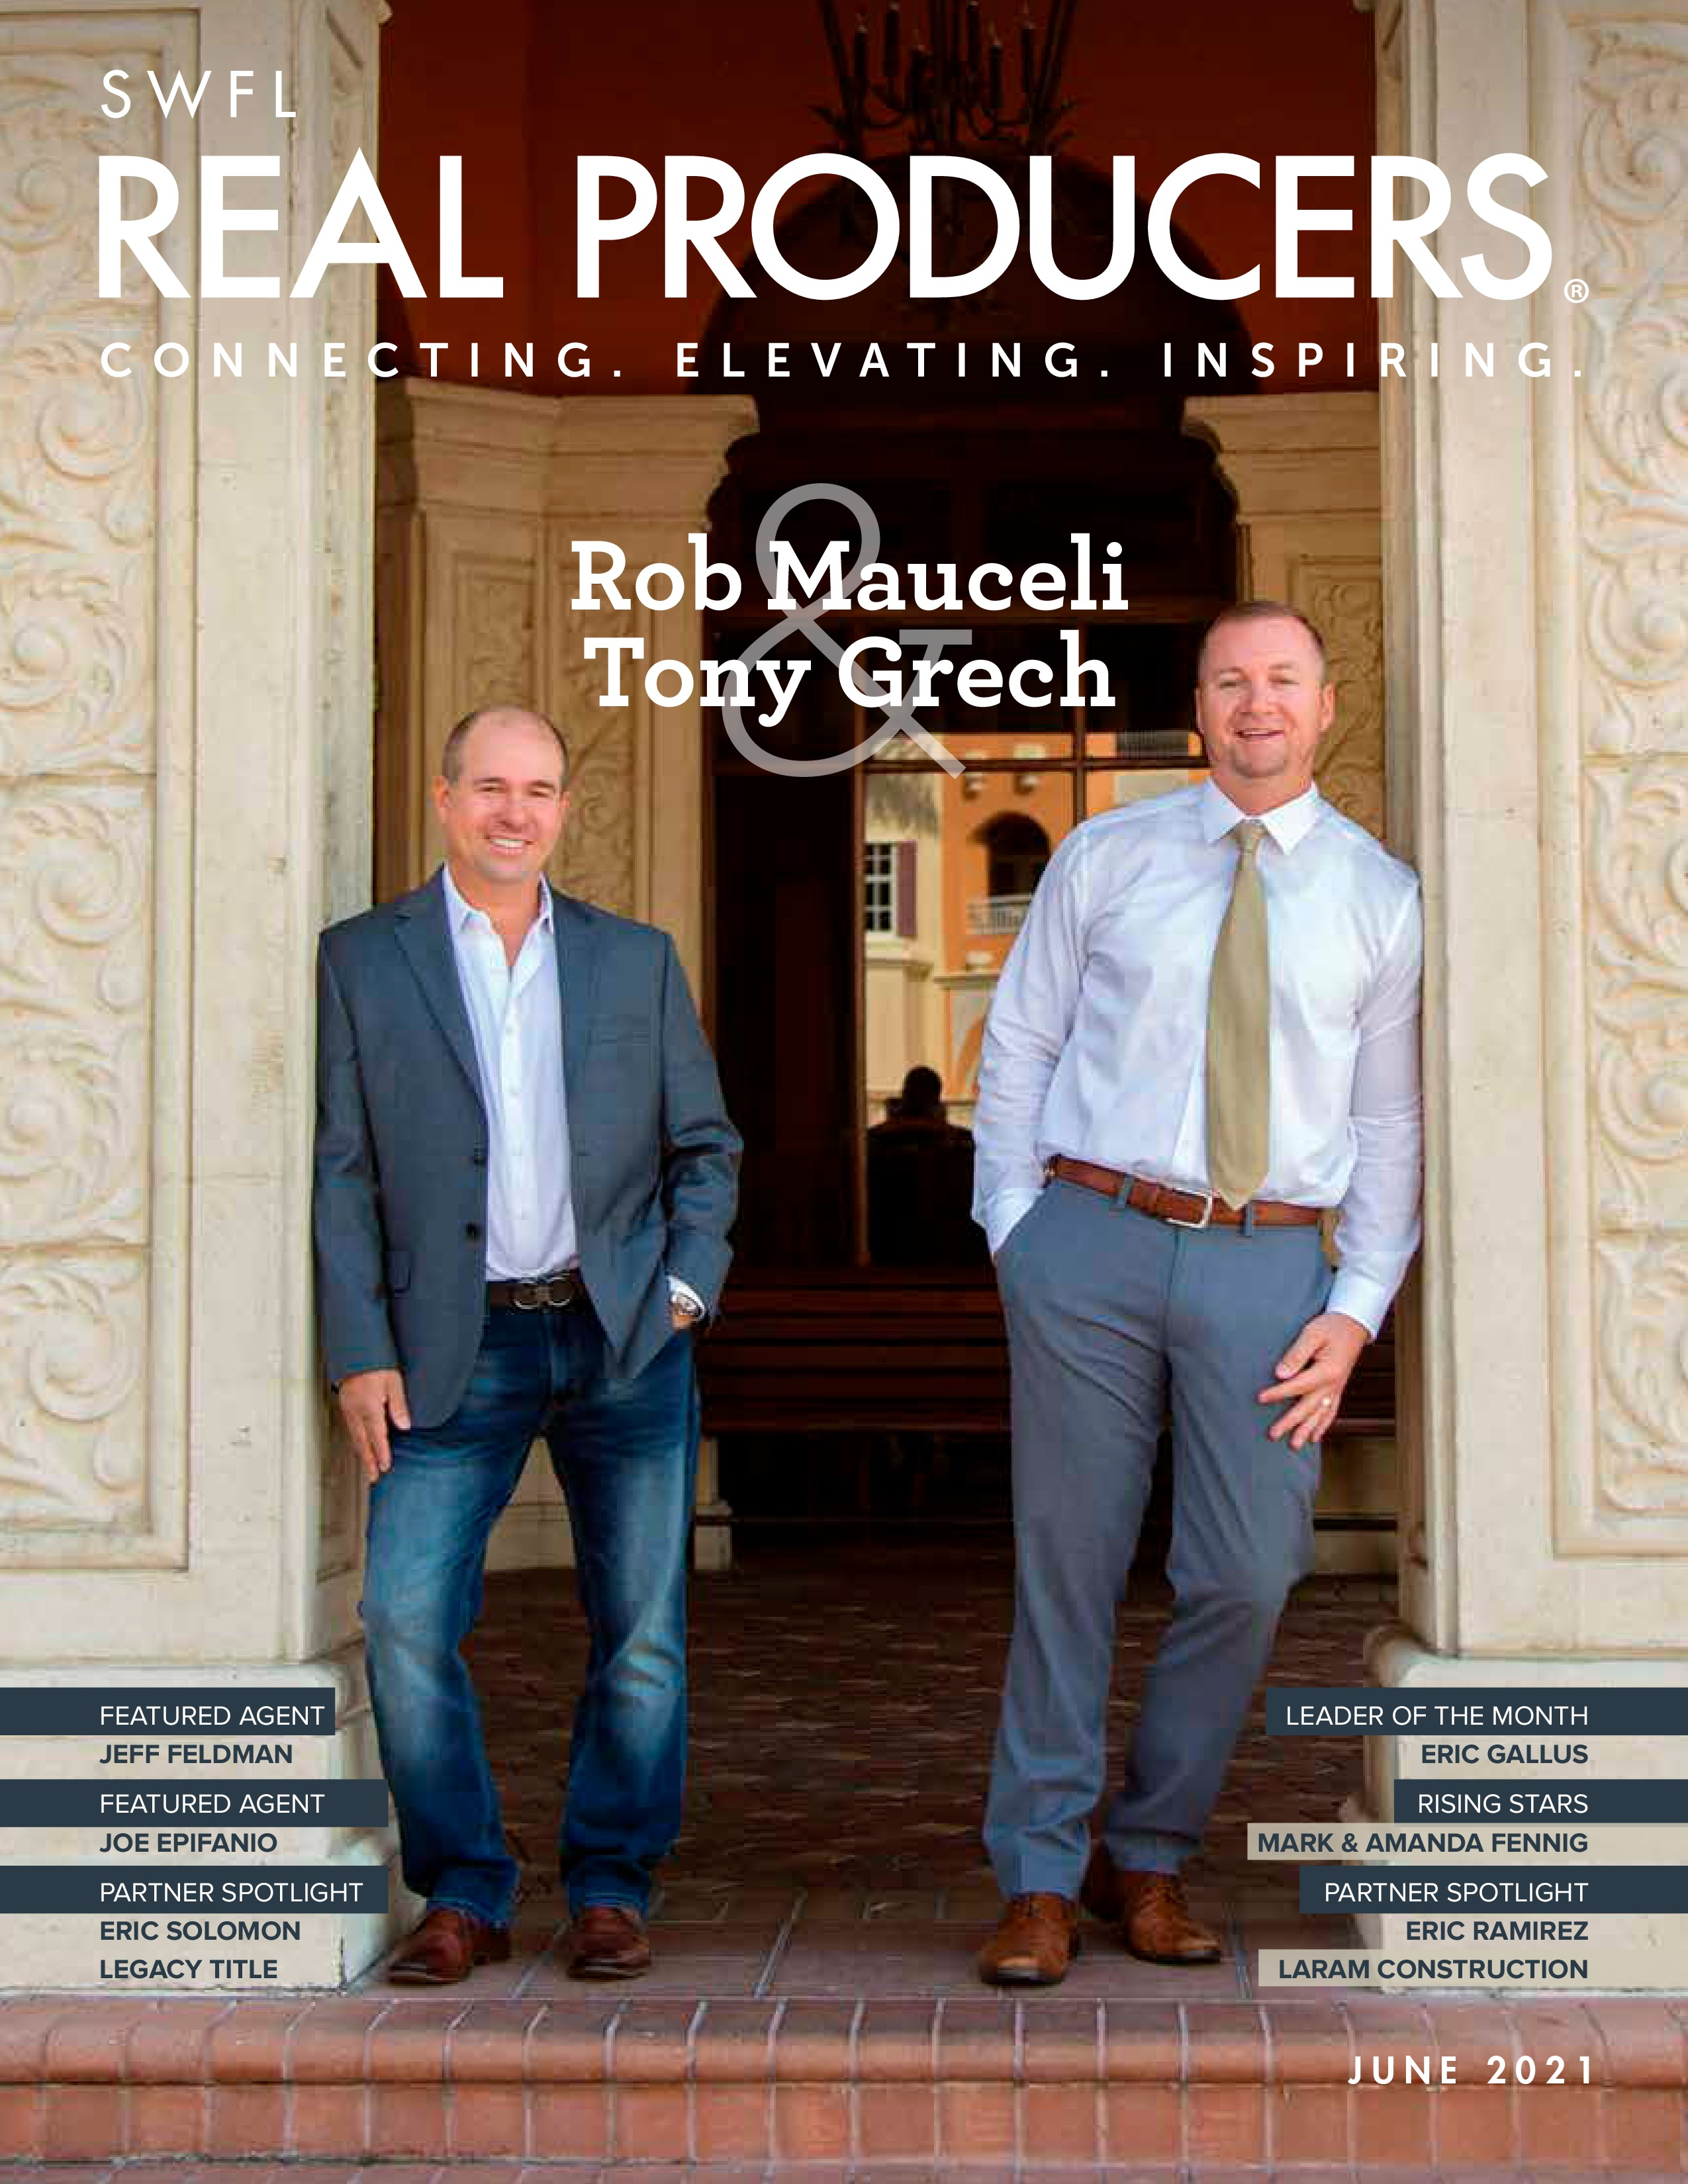 SWFL Real Producers 2021-06-01